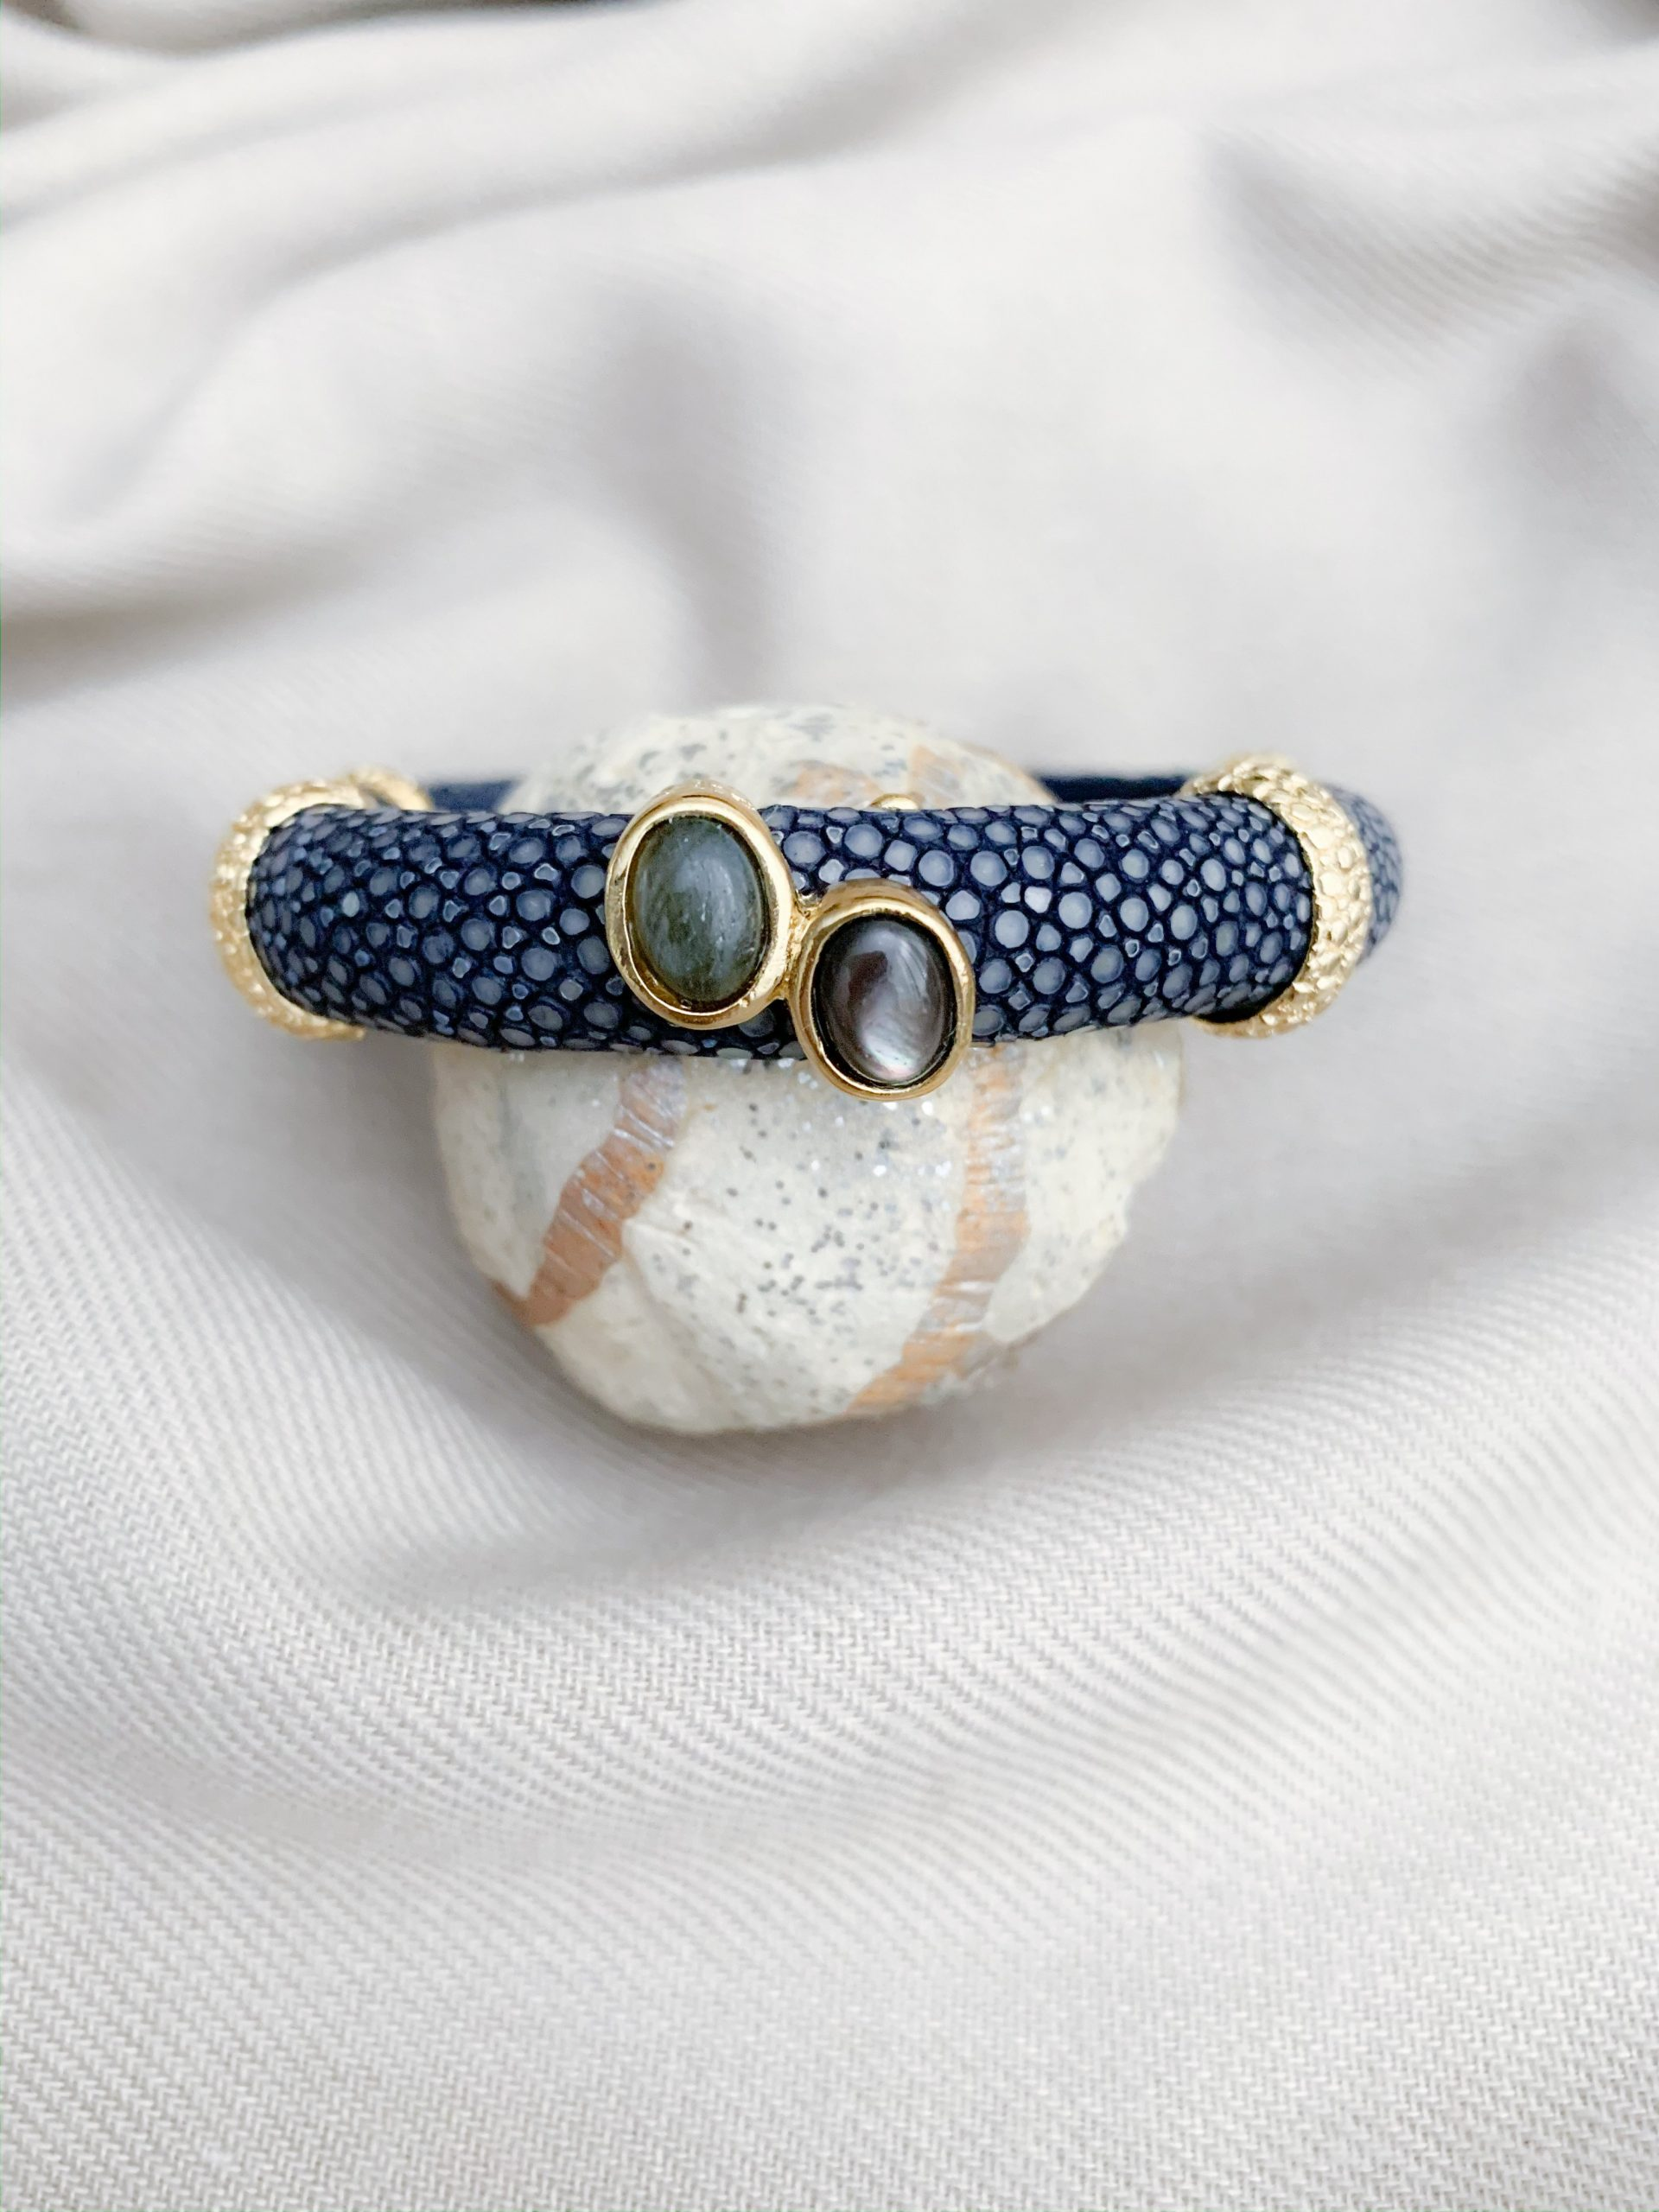 Navy blue stingray mother of pearl en labradoriet open armband